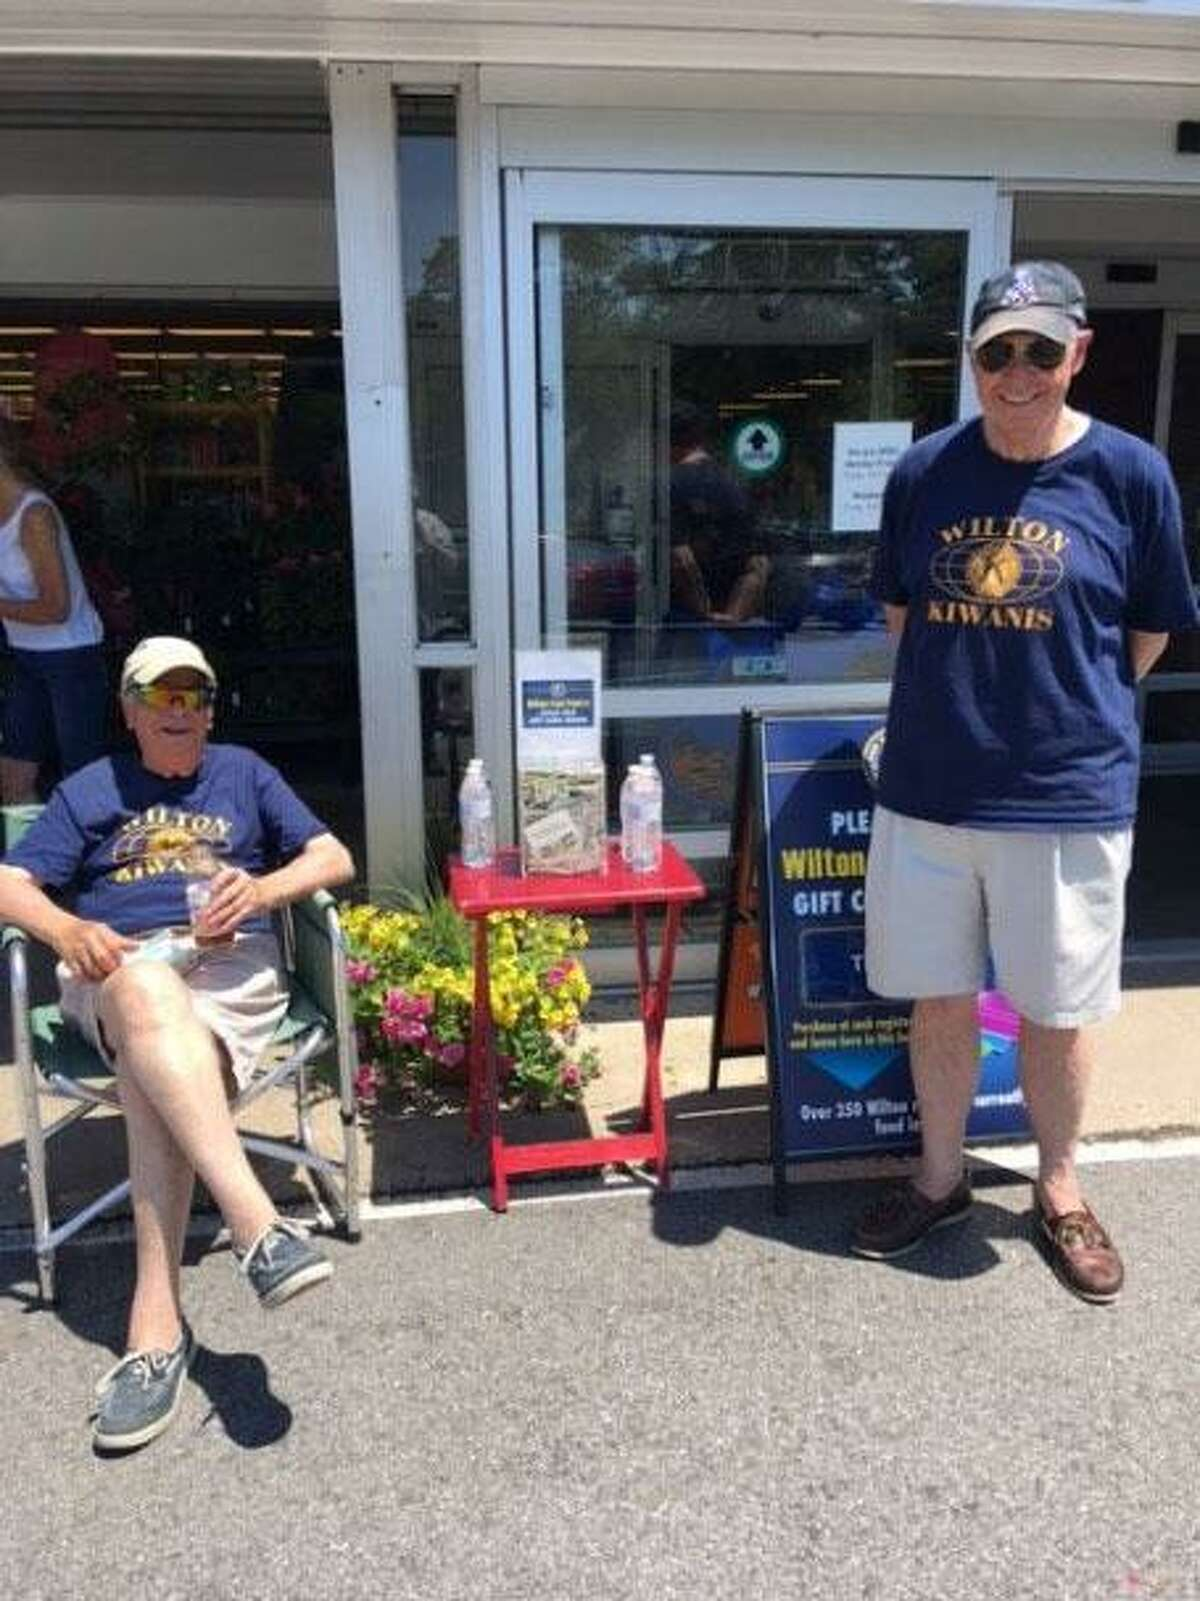 The president of the Wilton Kiwanis Club shows gratitude in this letter about the quarterly food drive that the Kiwanis Club recently had.